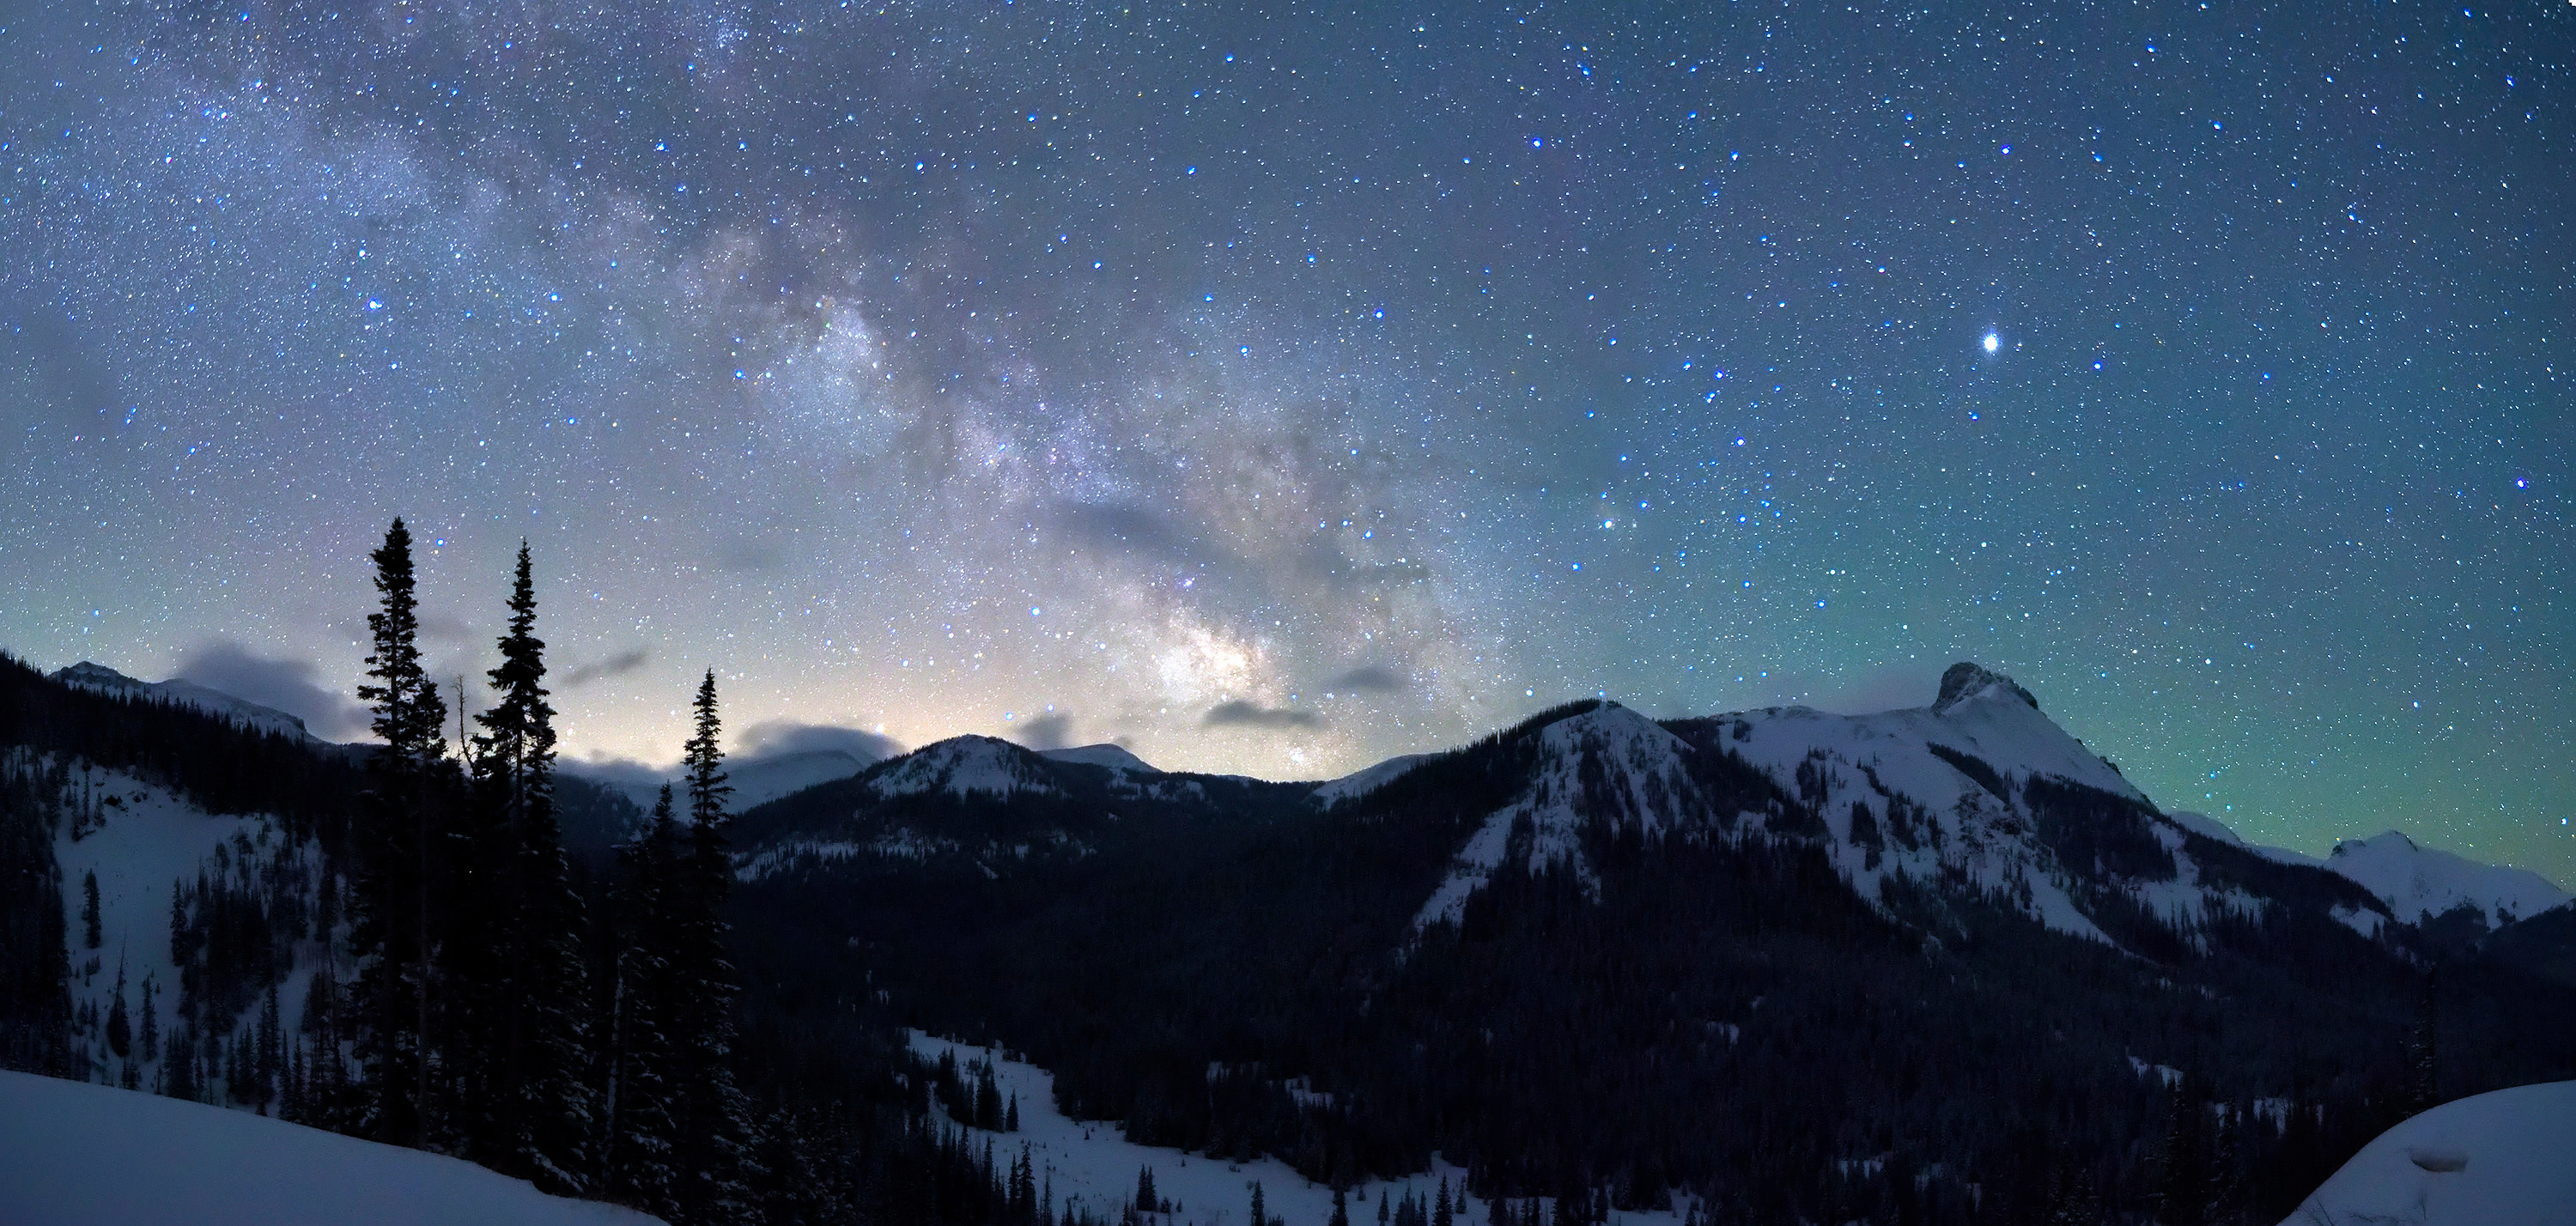 <div class='title'>           Never Summer Milky Way         </div>                 <div class='description'>           Viewed from a pullout on Colorado Highway 14 just west of Cameron Pass, the Milky Way rises into the night sky over the Never Summer Mountains. This panoramic view looks southward towards Rocky Mountain National Park.         </div>